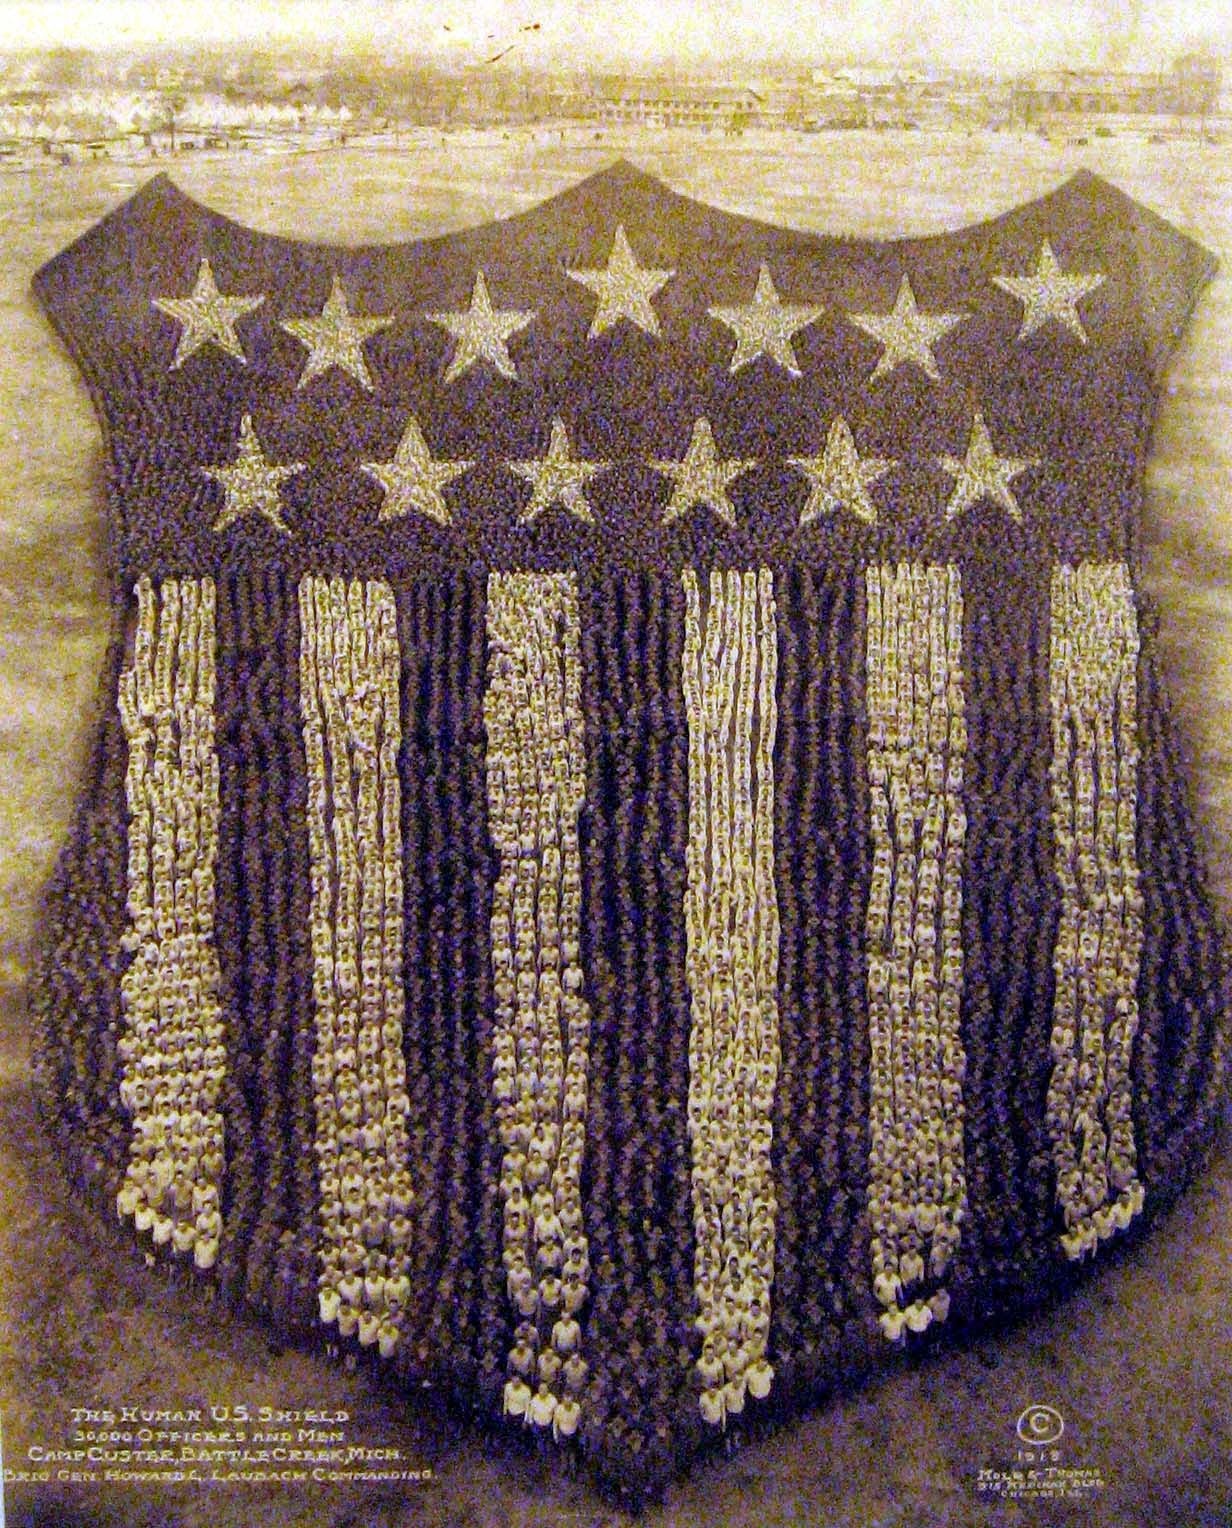 The Human U.S. Shield, 1918, Camp Custer, Mich. 30,000 officers and men